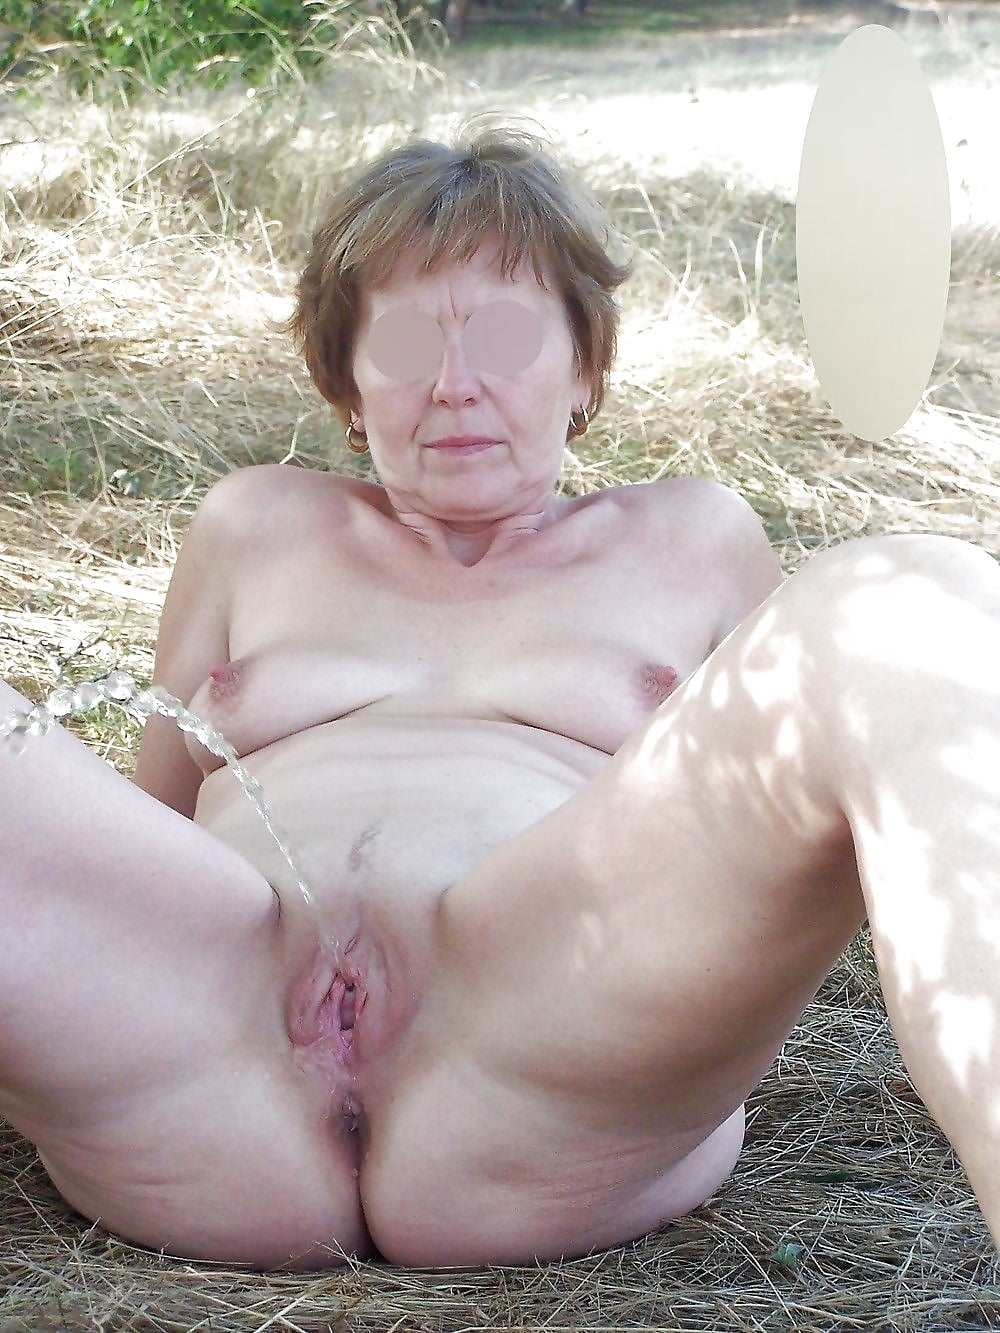 Nude grannys pissing, tgirls with big tits